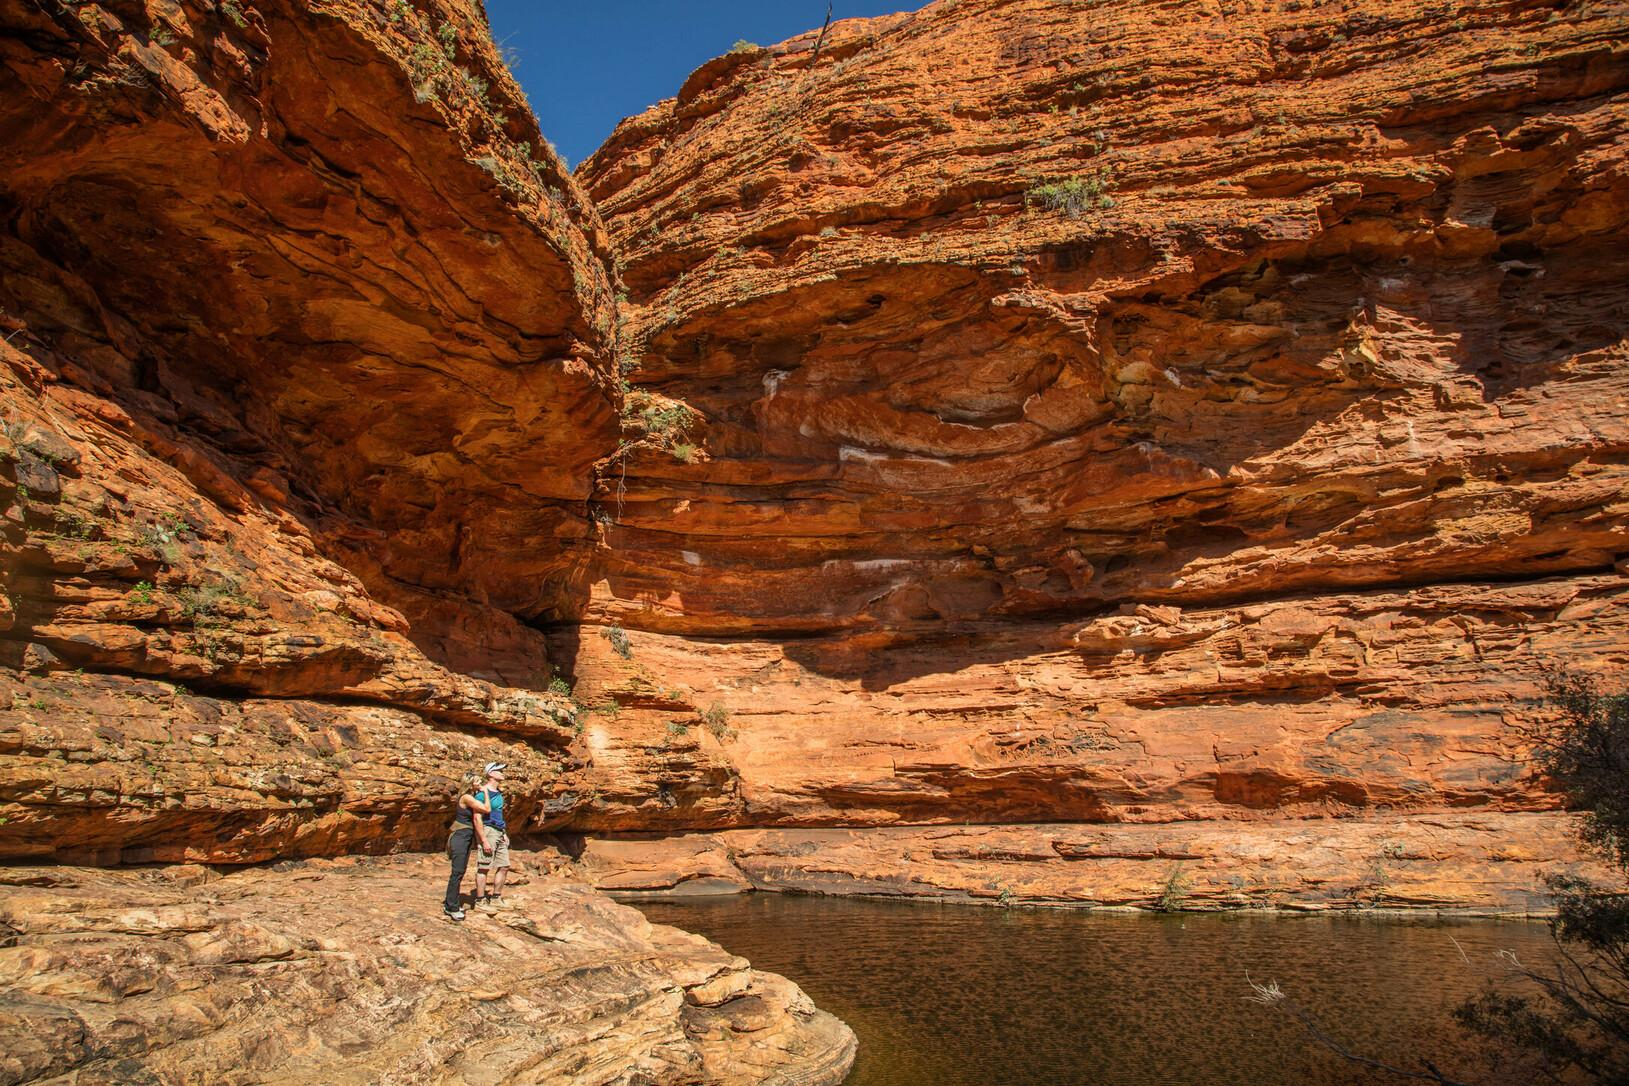 Explore the Red Centre on this 7 Day Outback Camping Adventure